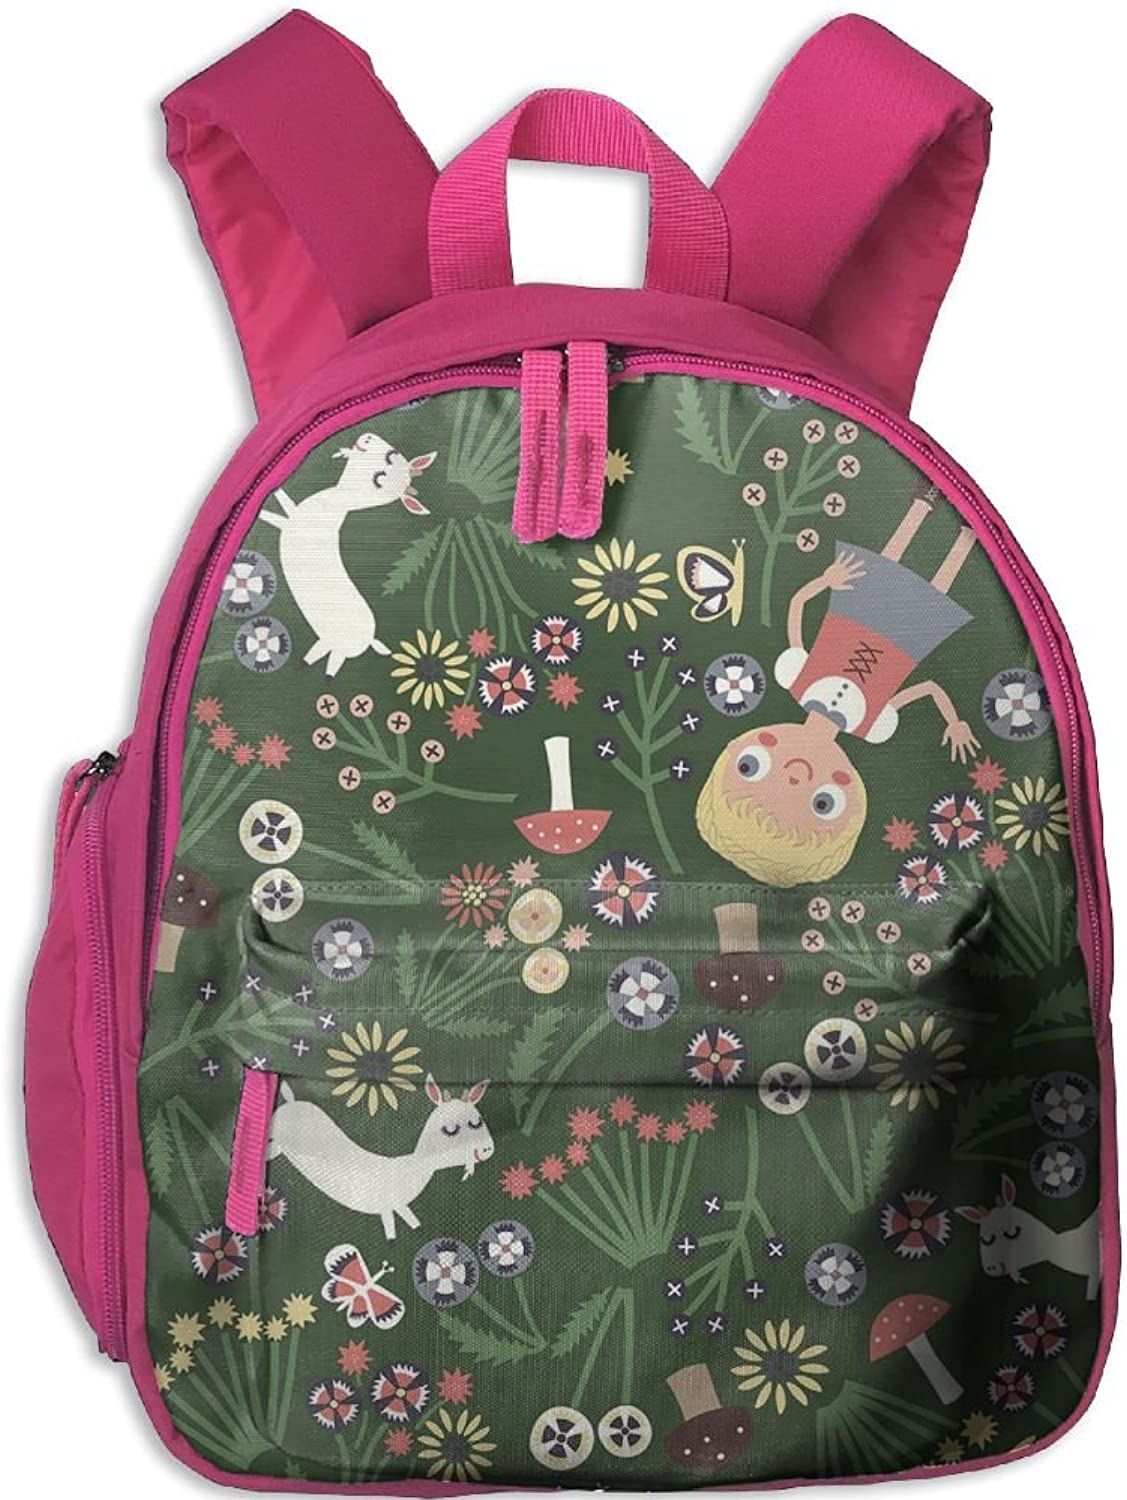 School Bag Story Book(10027) With Durable Travel Camping Backpack For Boys And Girls